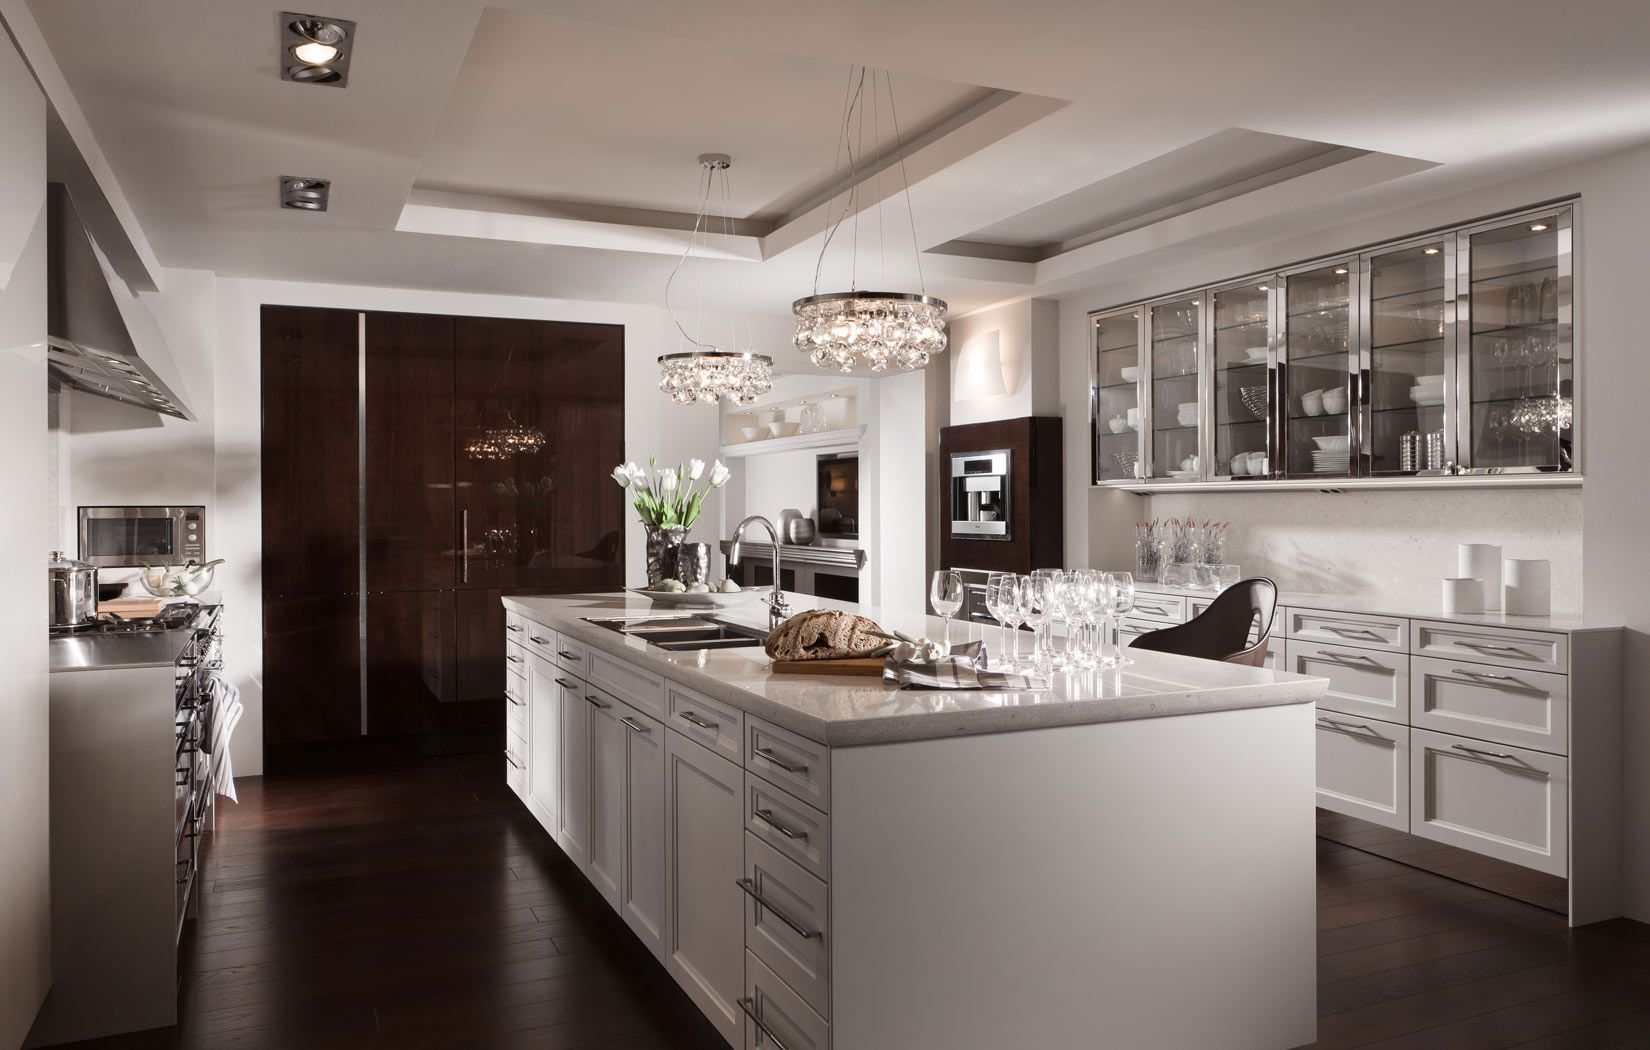 Omgsh This Is The Most Gorgeous Kitchen Ever By Siematic I Love